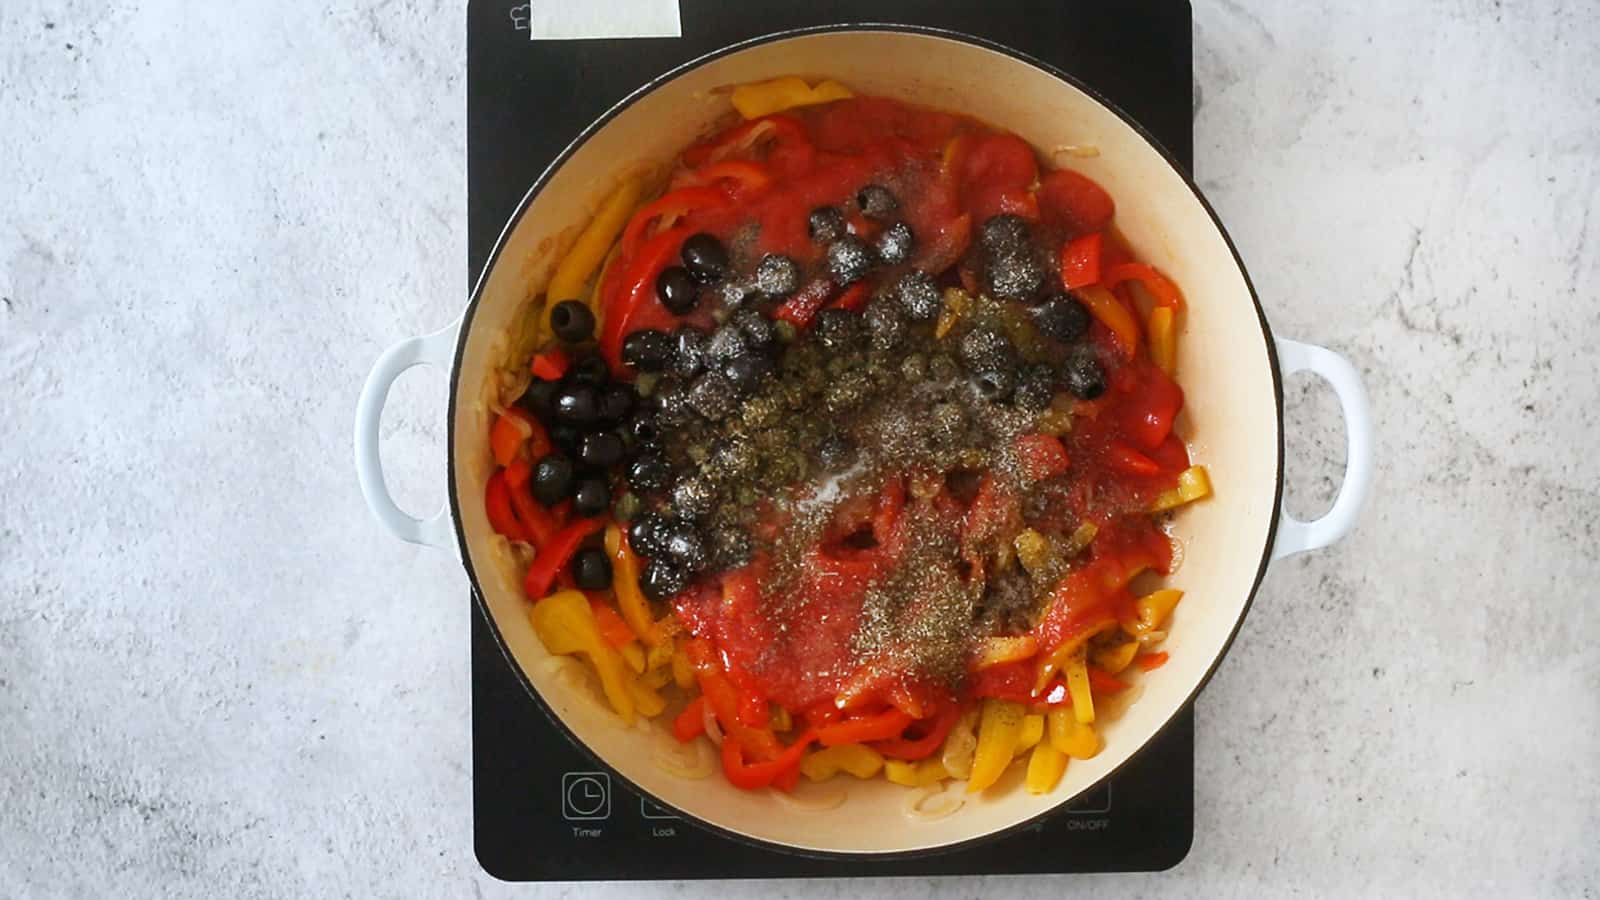 Olives, capers and oregano added to the pan.